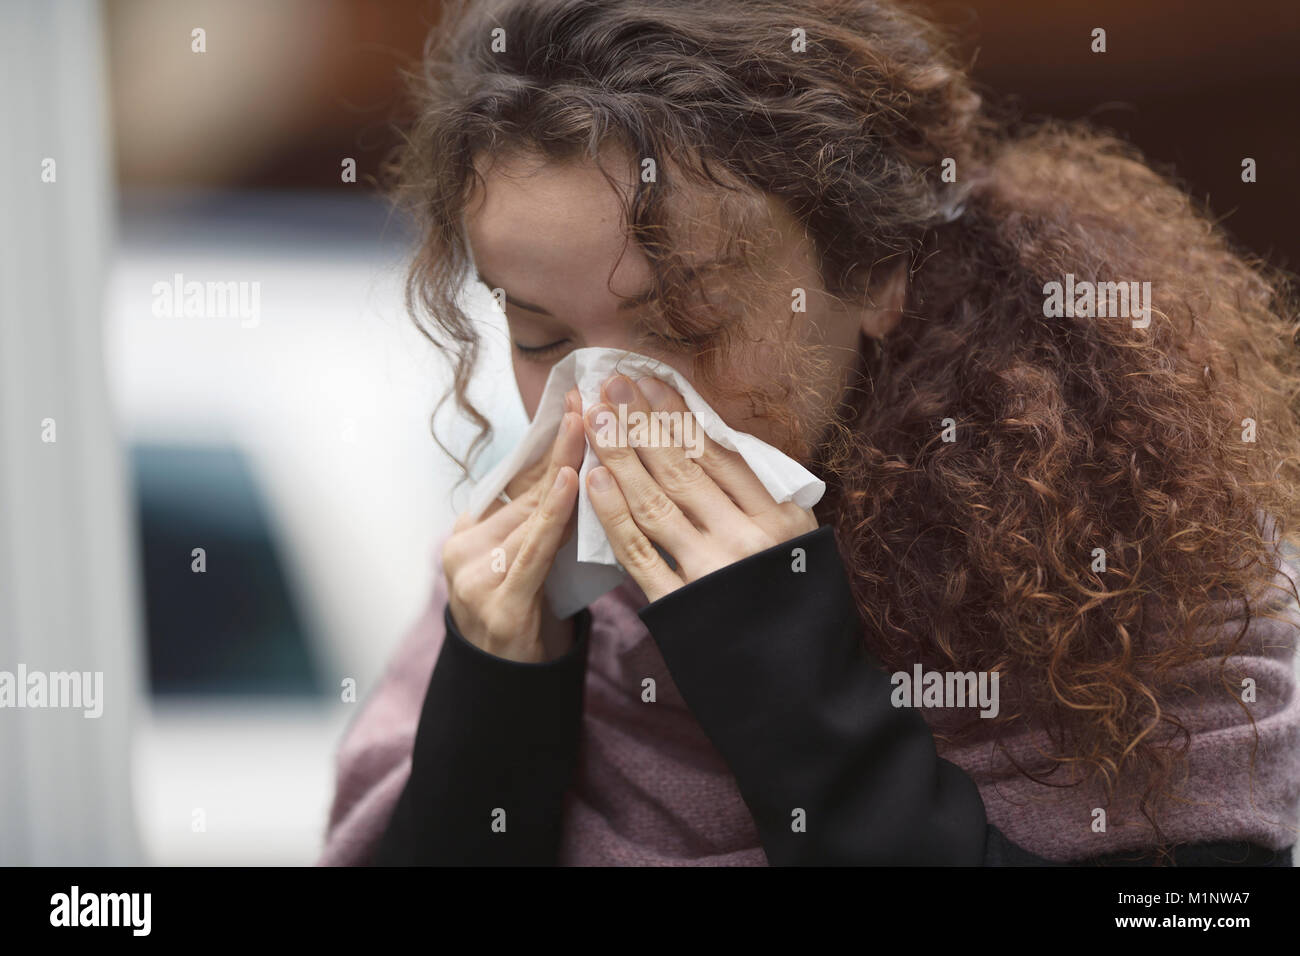 Woman blowing her runny nose or sneezing in a paper tissue outside on the street - Stock Image